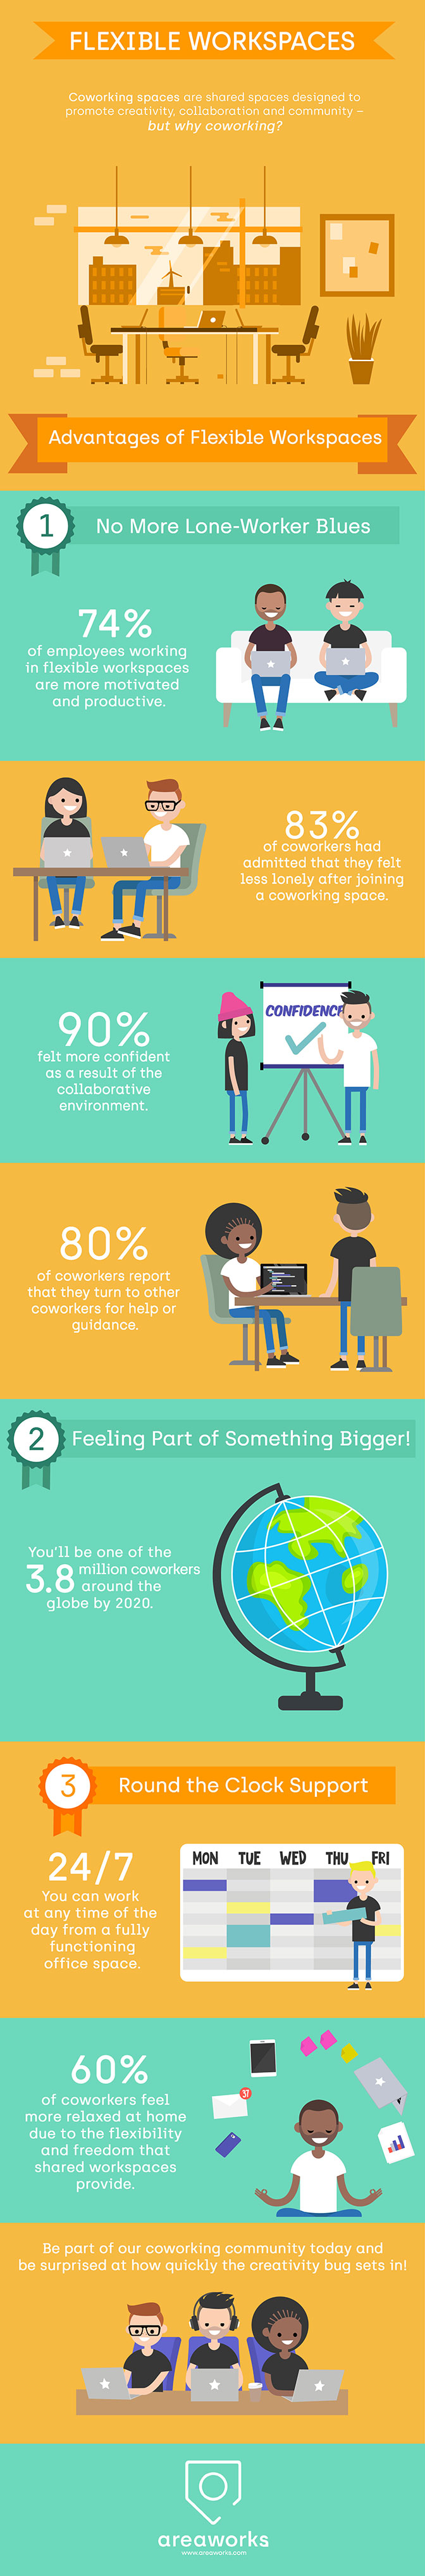 An infographic that shows the advantages of coworking and collaborative spaces to employees' productivity, emotions and confidence.